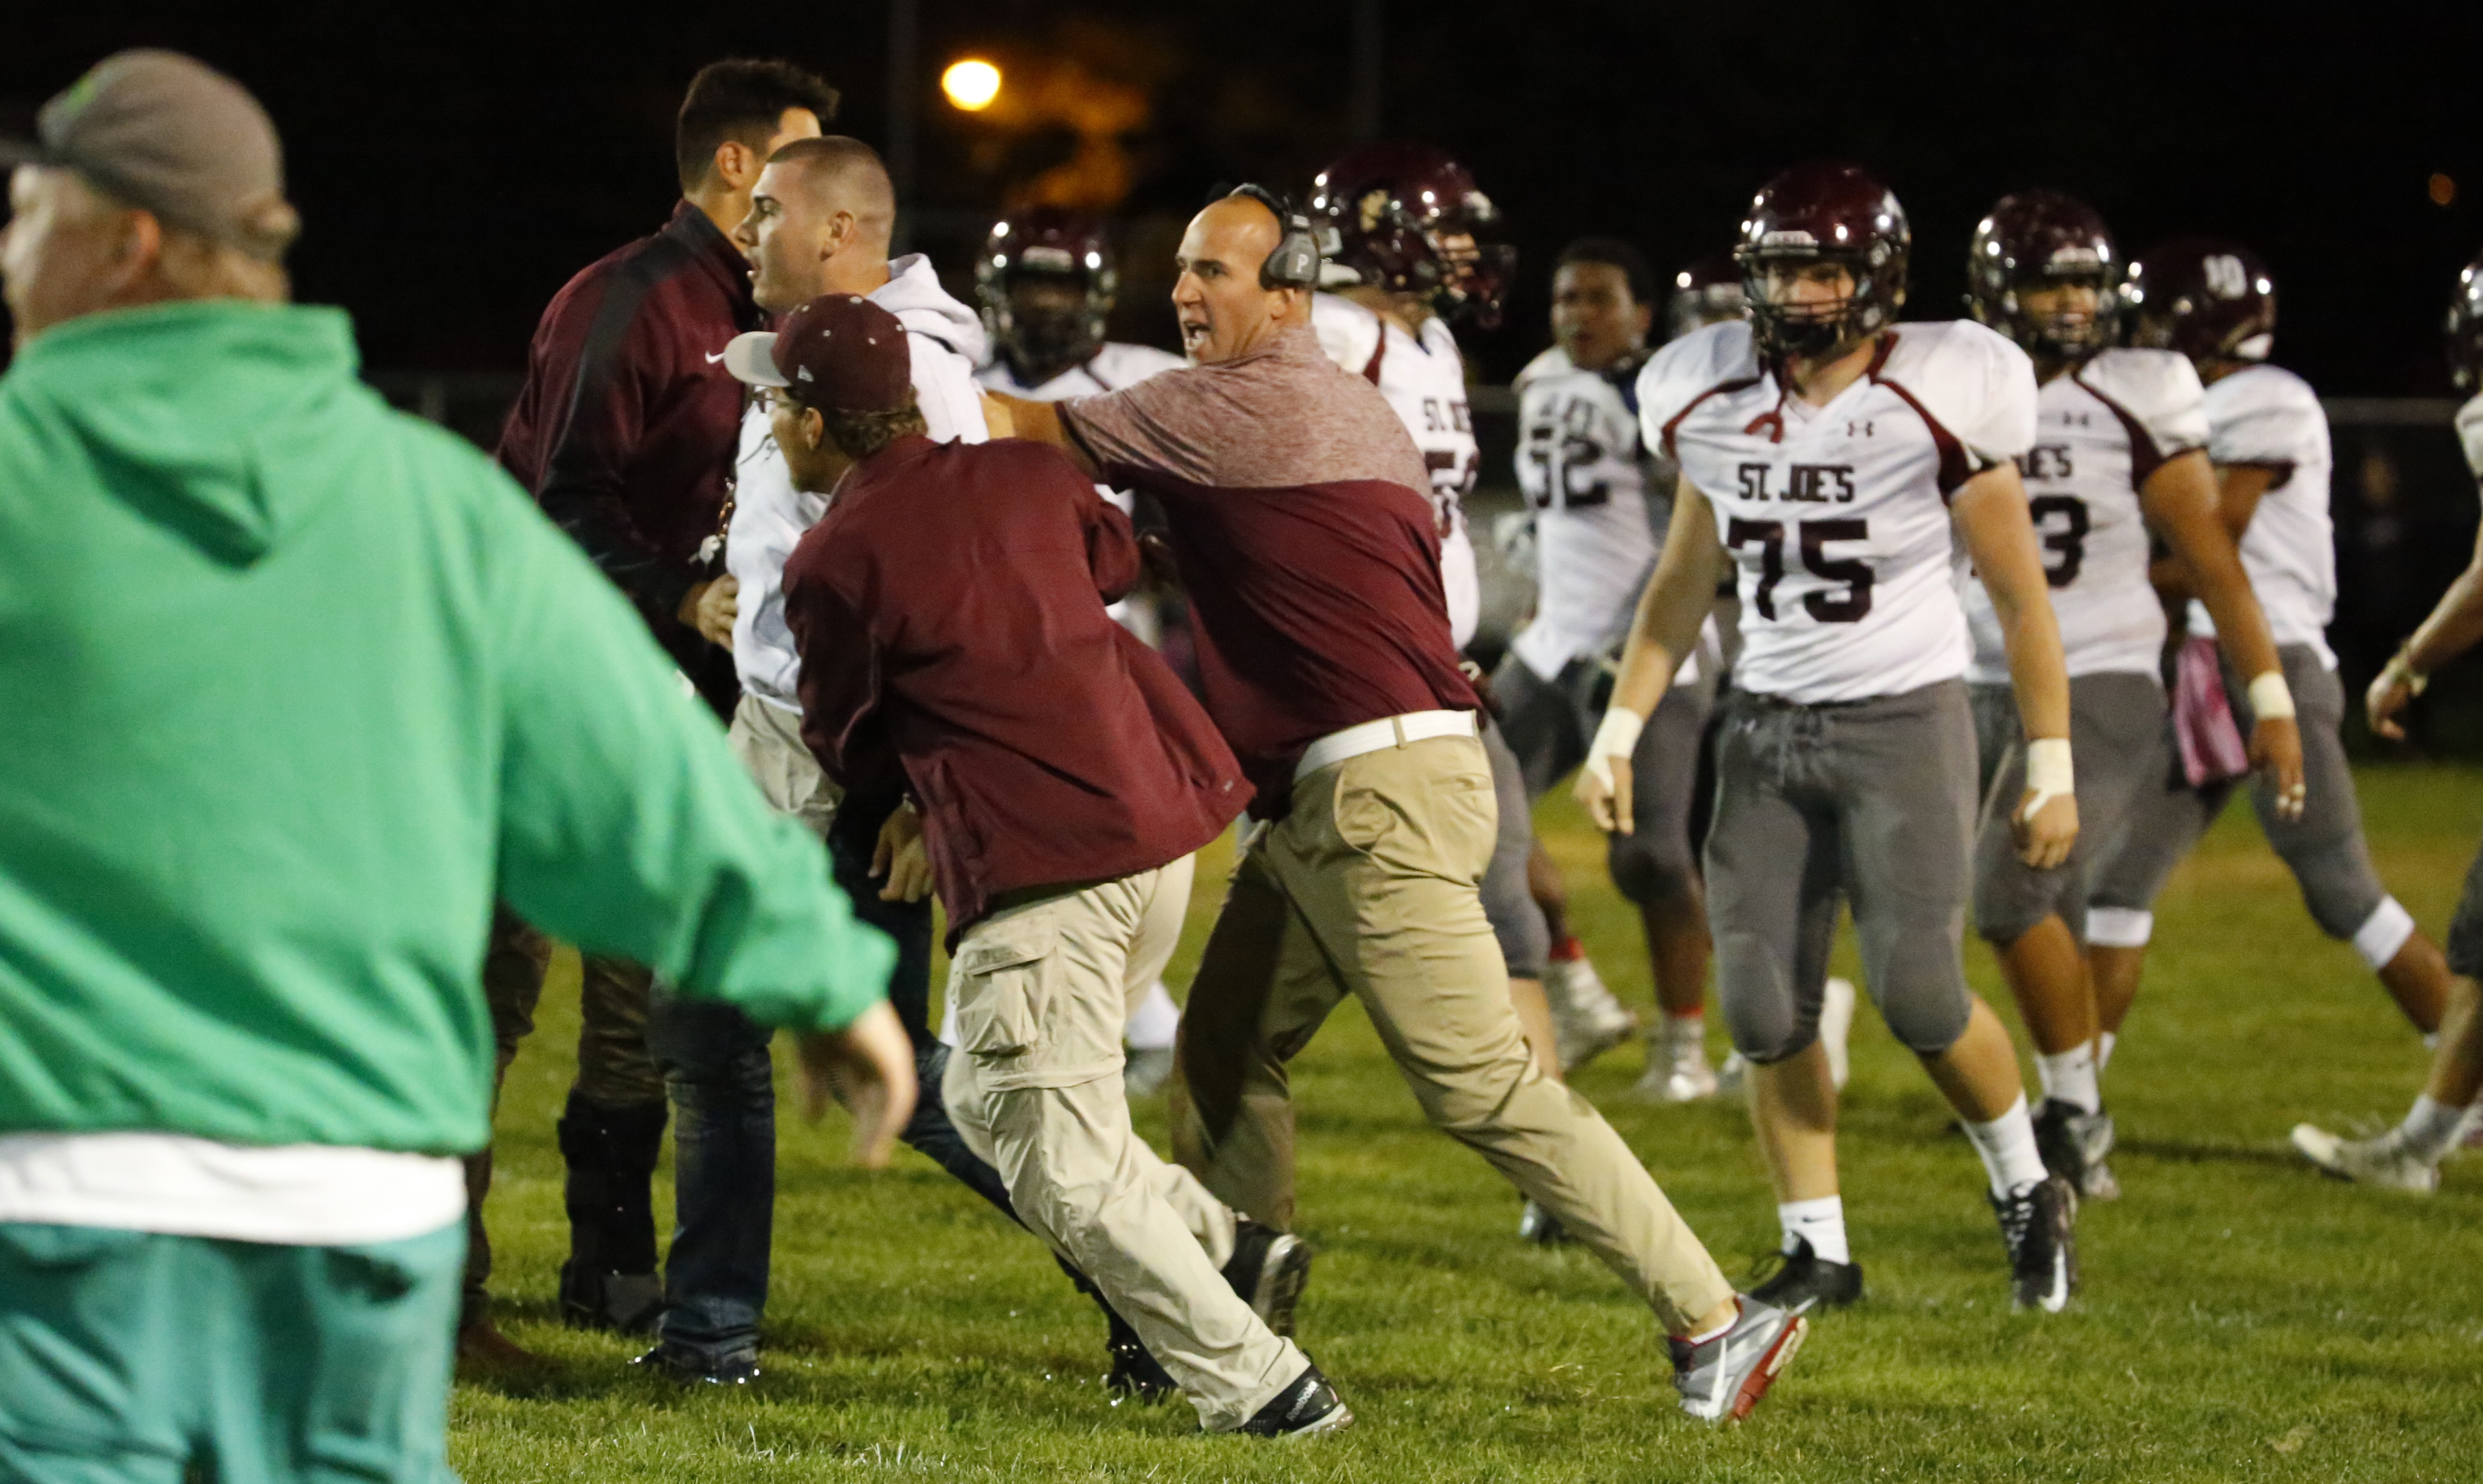 St. Joe's alumni and Ole Missippi quarterback Chad Kelly is restrained after leaving the stand to come to the aid of his brother Casey who was involved in and altercation with the Timon bench during second quarter action at Tiff farms on Friday,Oct. 7, 2016.(Harry Scull Jr./Buffalo News)